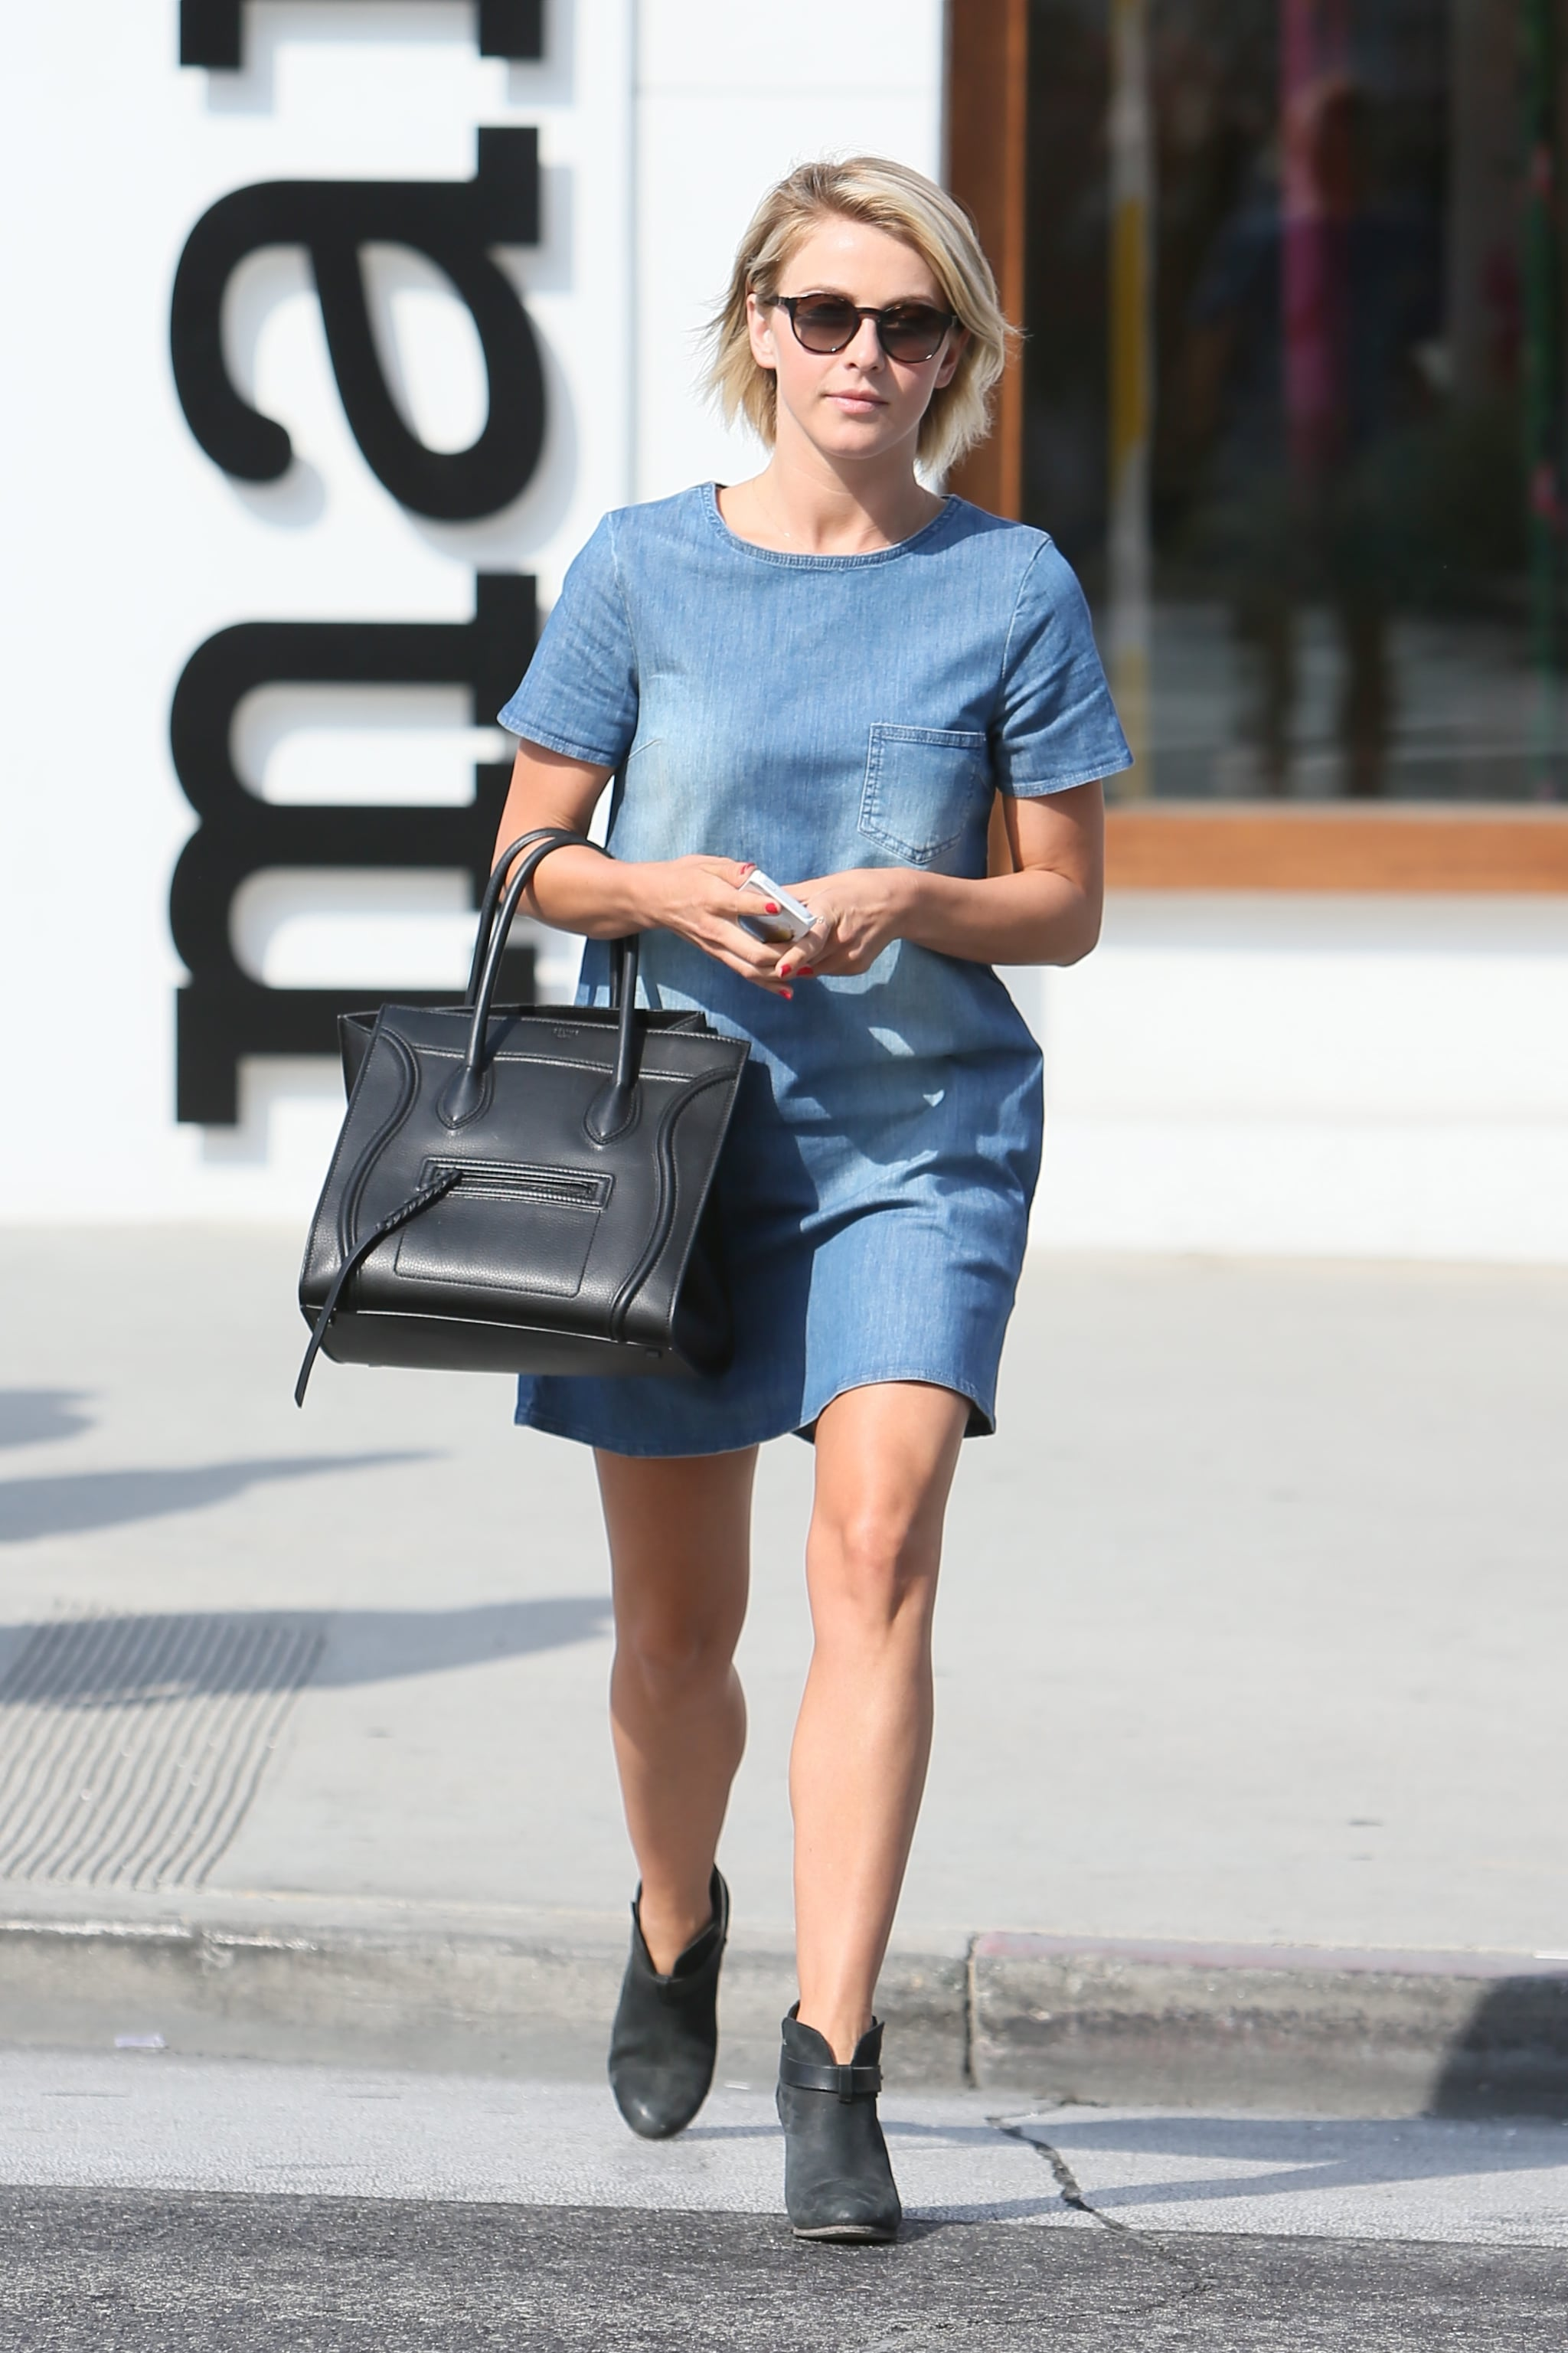 Julianne Hough's little denim dress feels Fall-ready with ankle boots and even tights when the weather calls for it (and you know it will!).